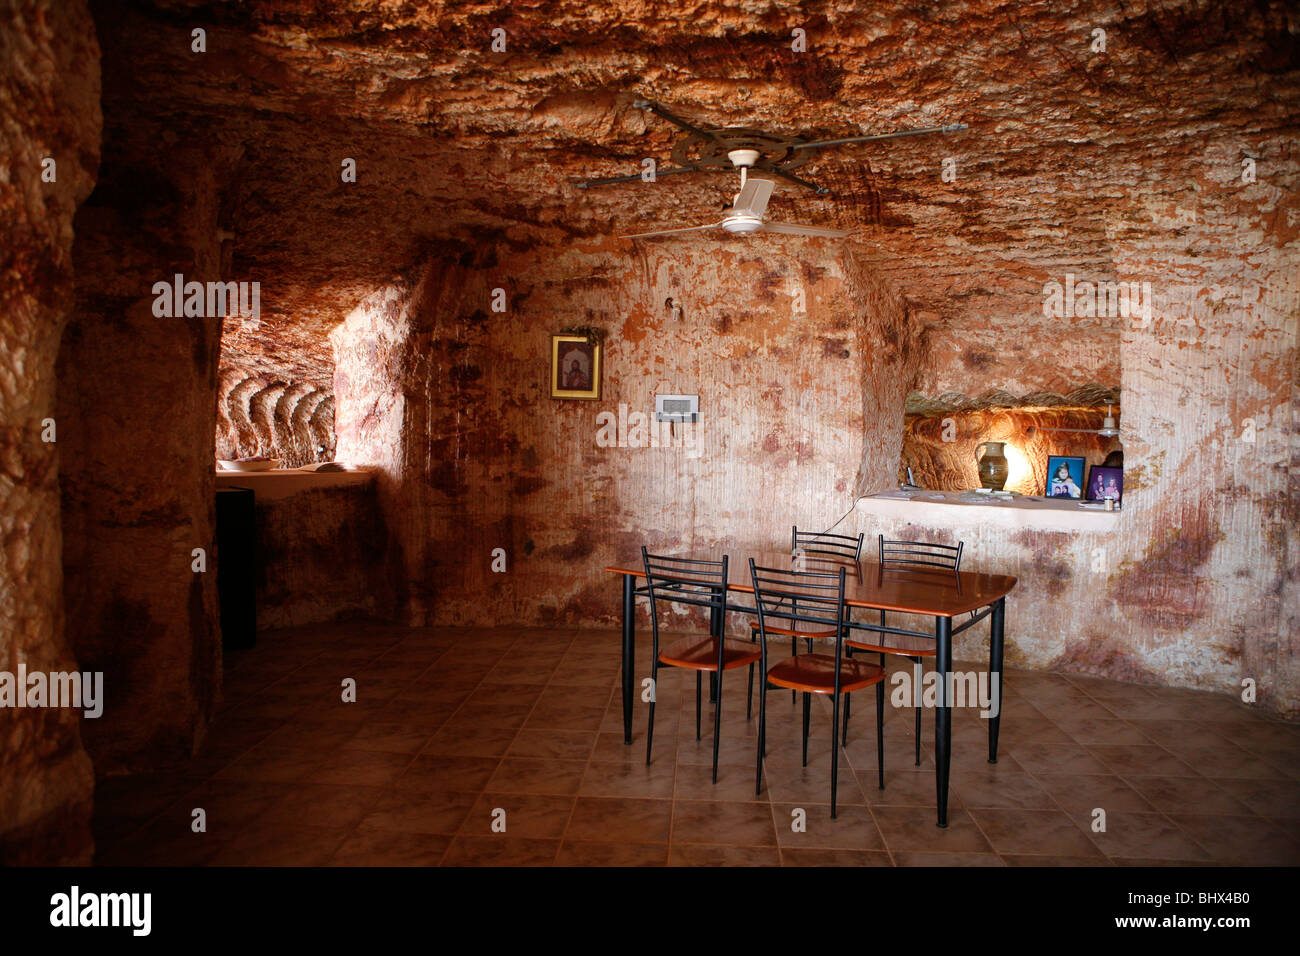 In Cooper Peddy (in the Outback) 60 percent of the people live underground, often in old mines (Outback, South Australia) Stock Photo